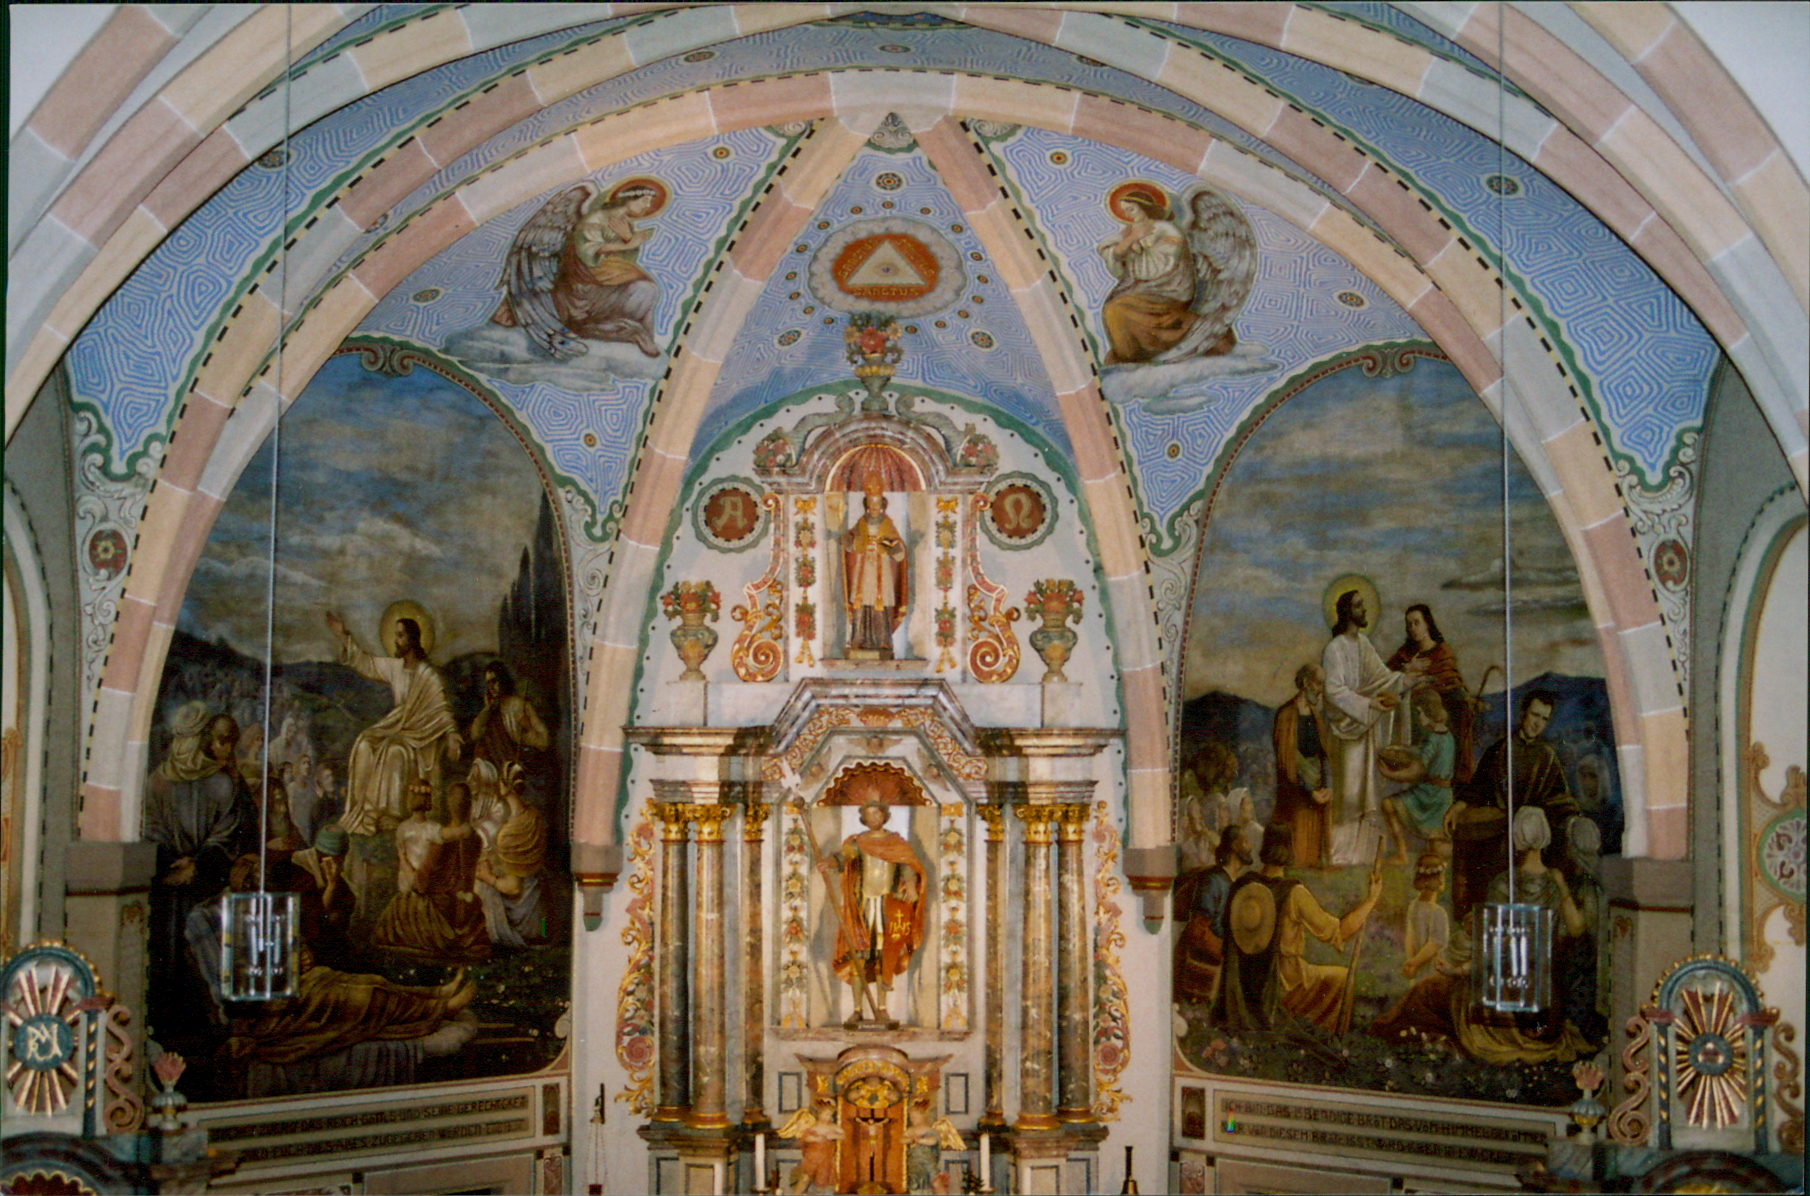 Mural behind the altar